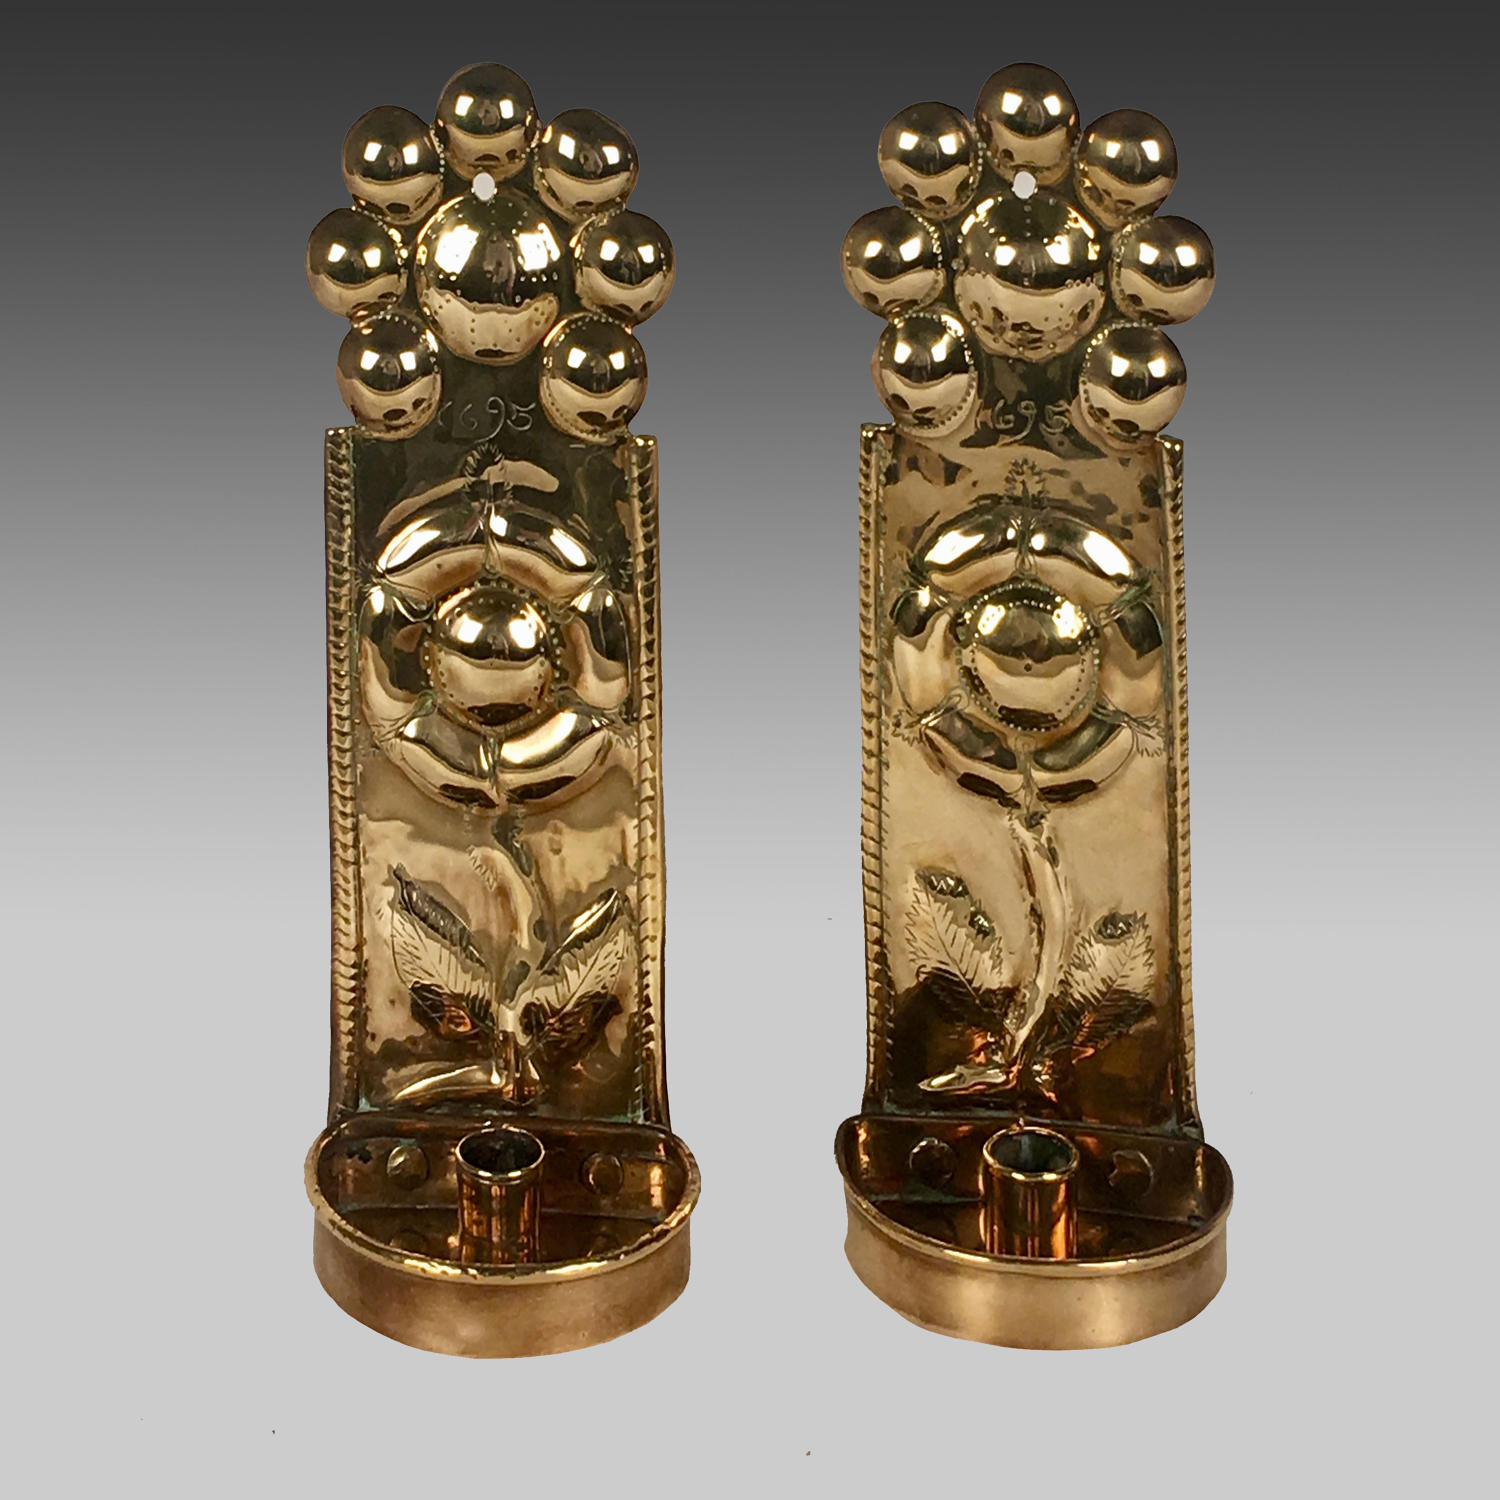 17th century pair of brass wall sconces